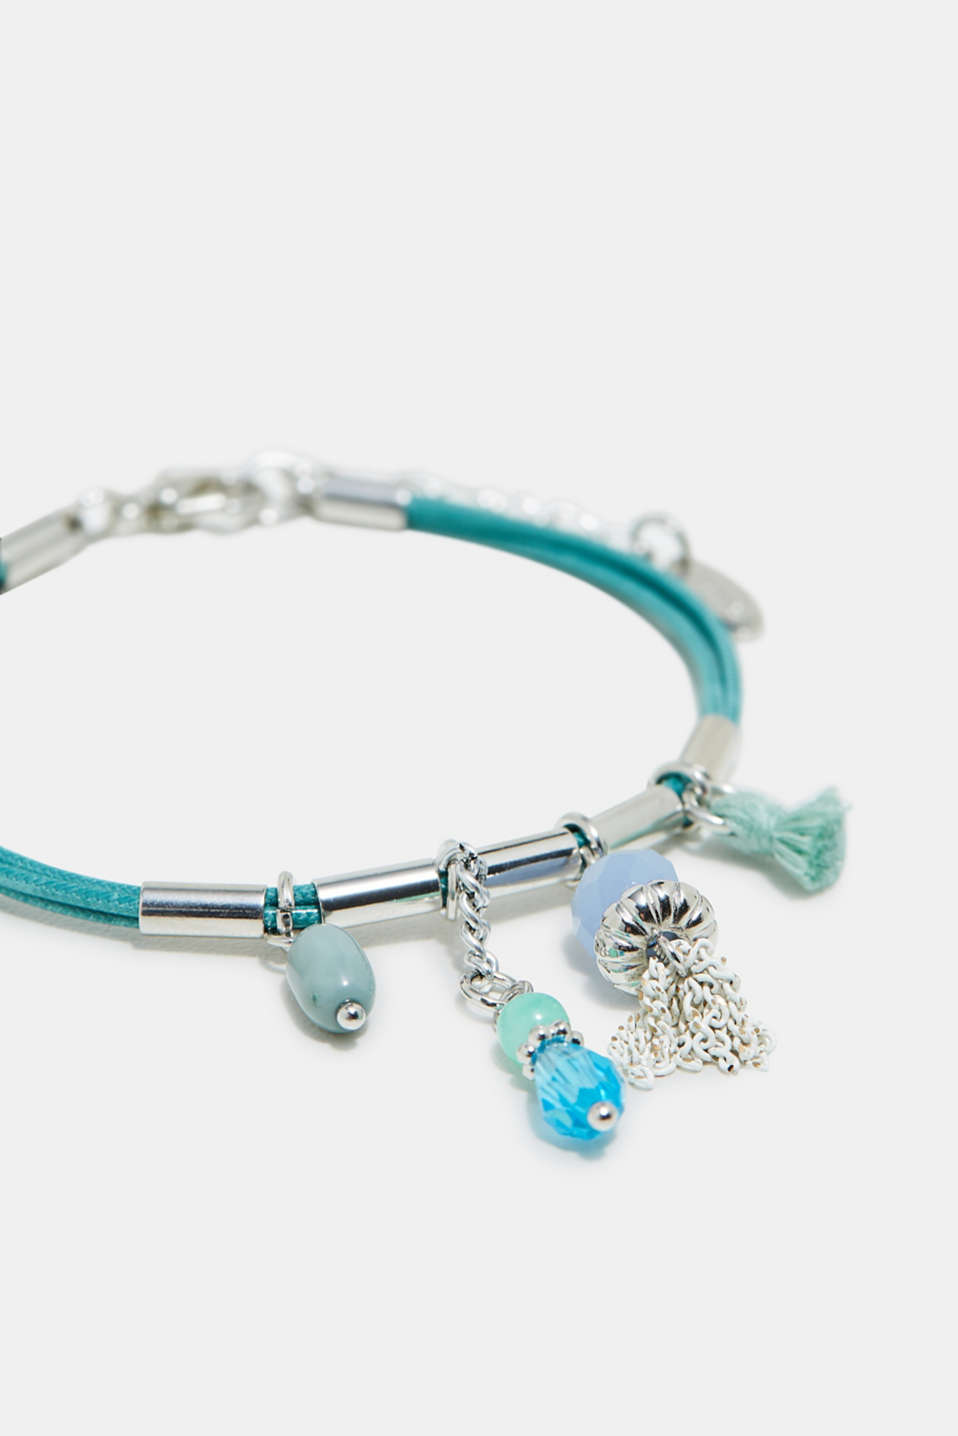 Three-strand bracelet with charms